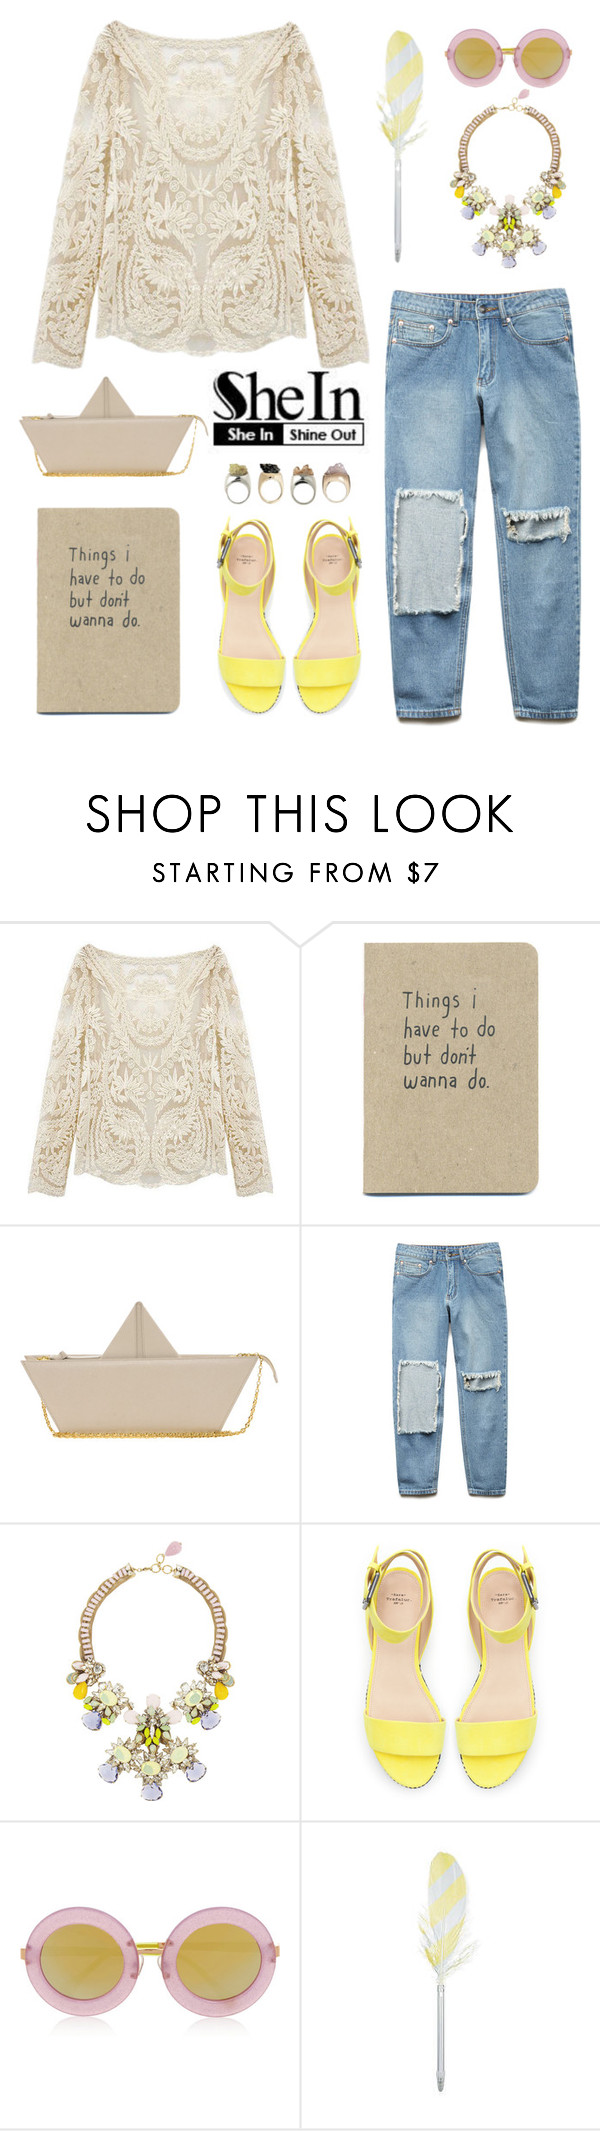 """Beige"" by a-hint-of-nutmeg ❤ liked on Polyvore featuring мода, Moschino Cheap & Chic, Forever 21, Bijoux Heart, Zara, Markus Lupfer, HAY, women's clothing, women и female"